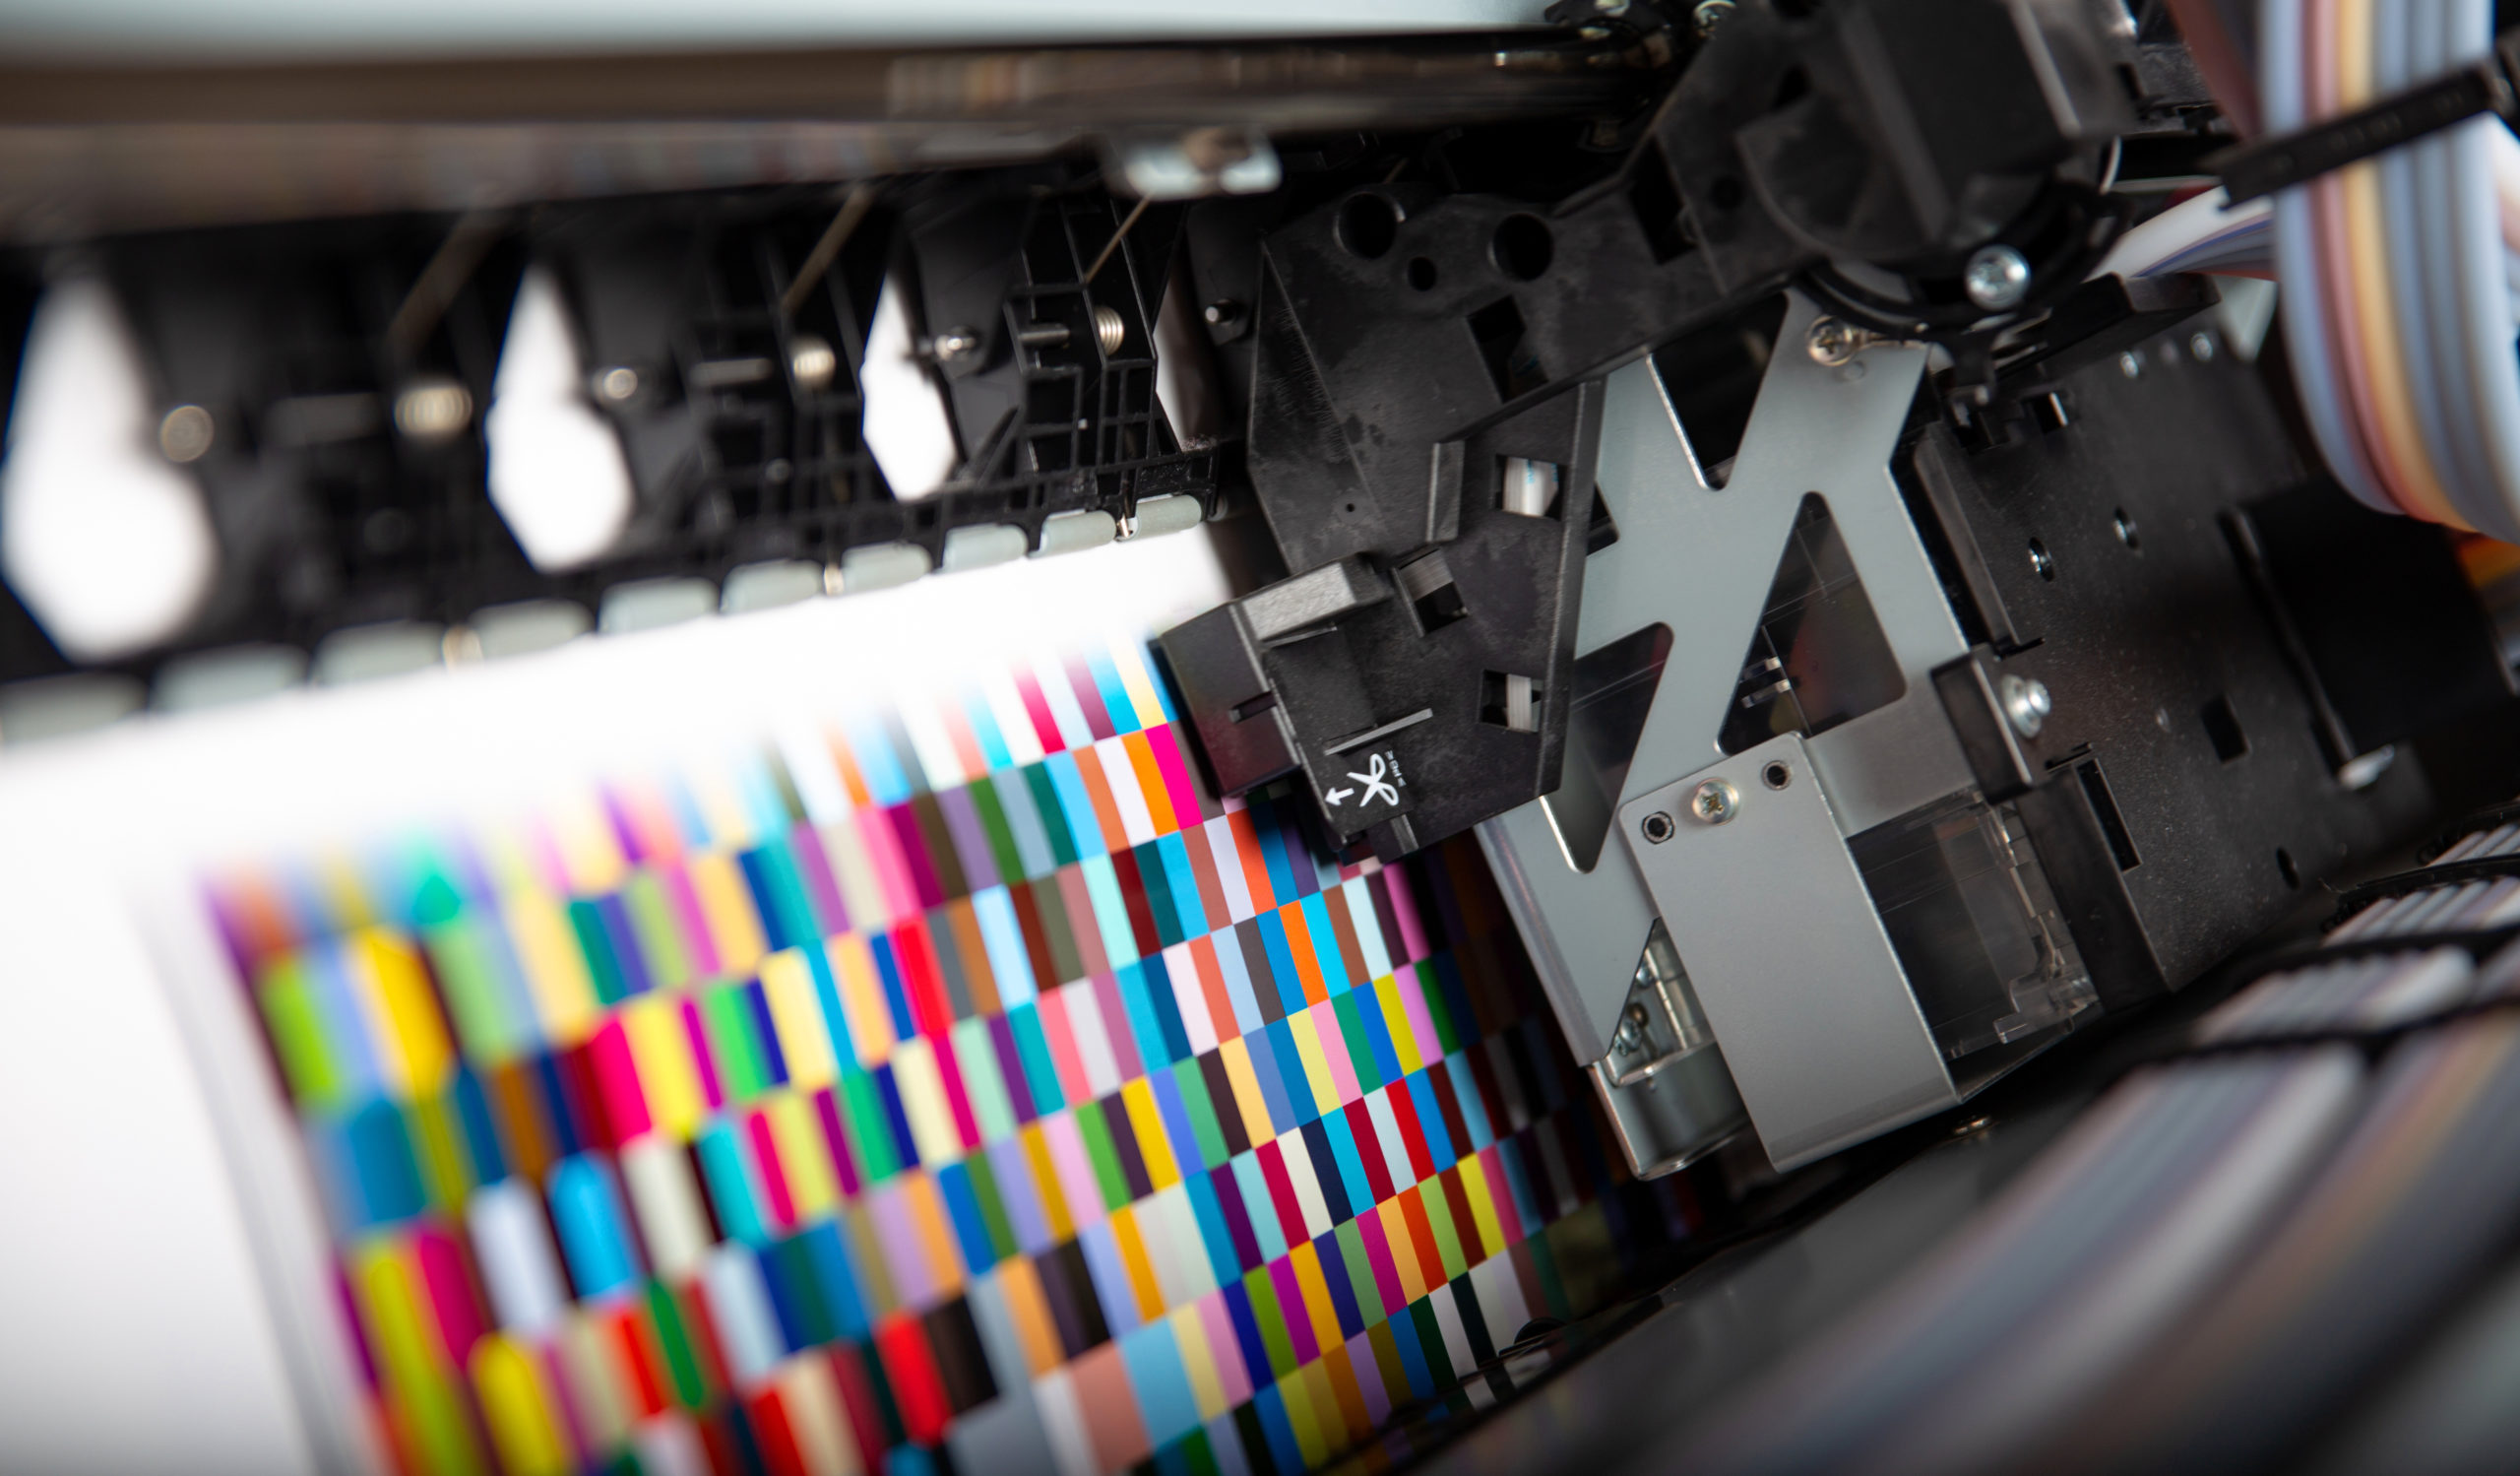 Image of Printer ink jet print machine printing color patches for color management control